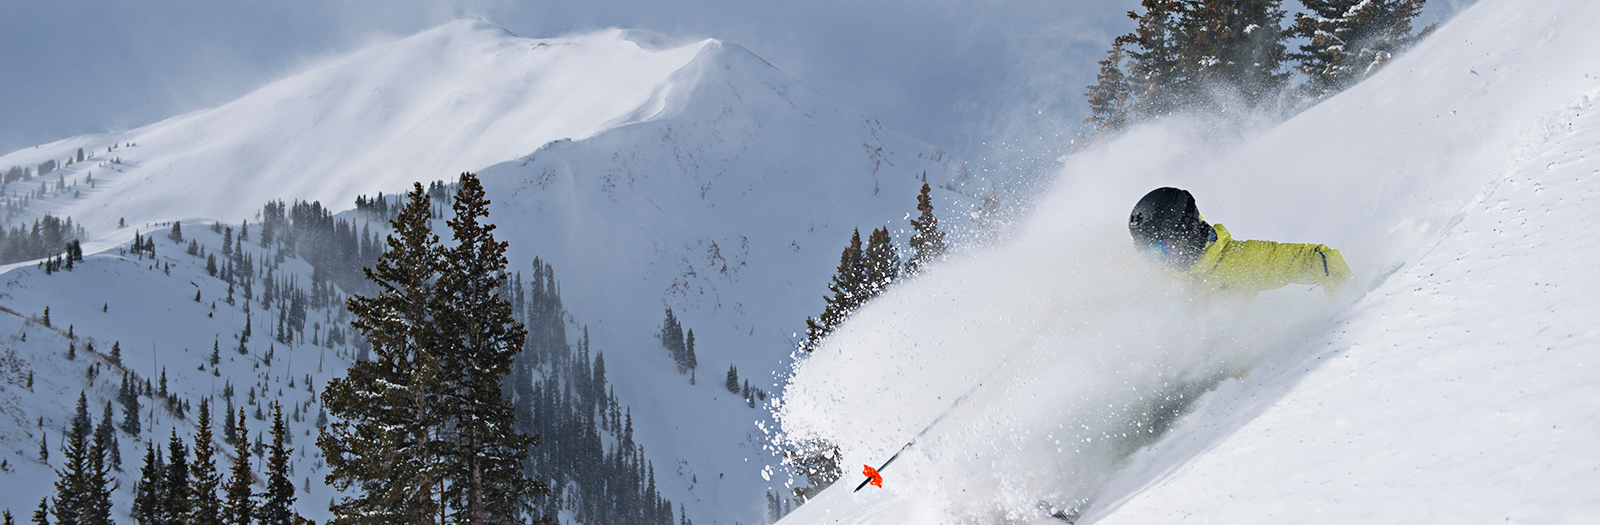 Aspen hotels, lodging packages, stay and ski deals